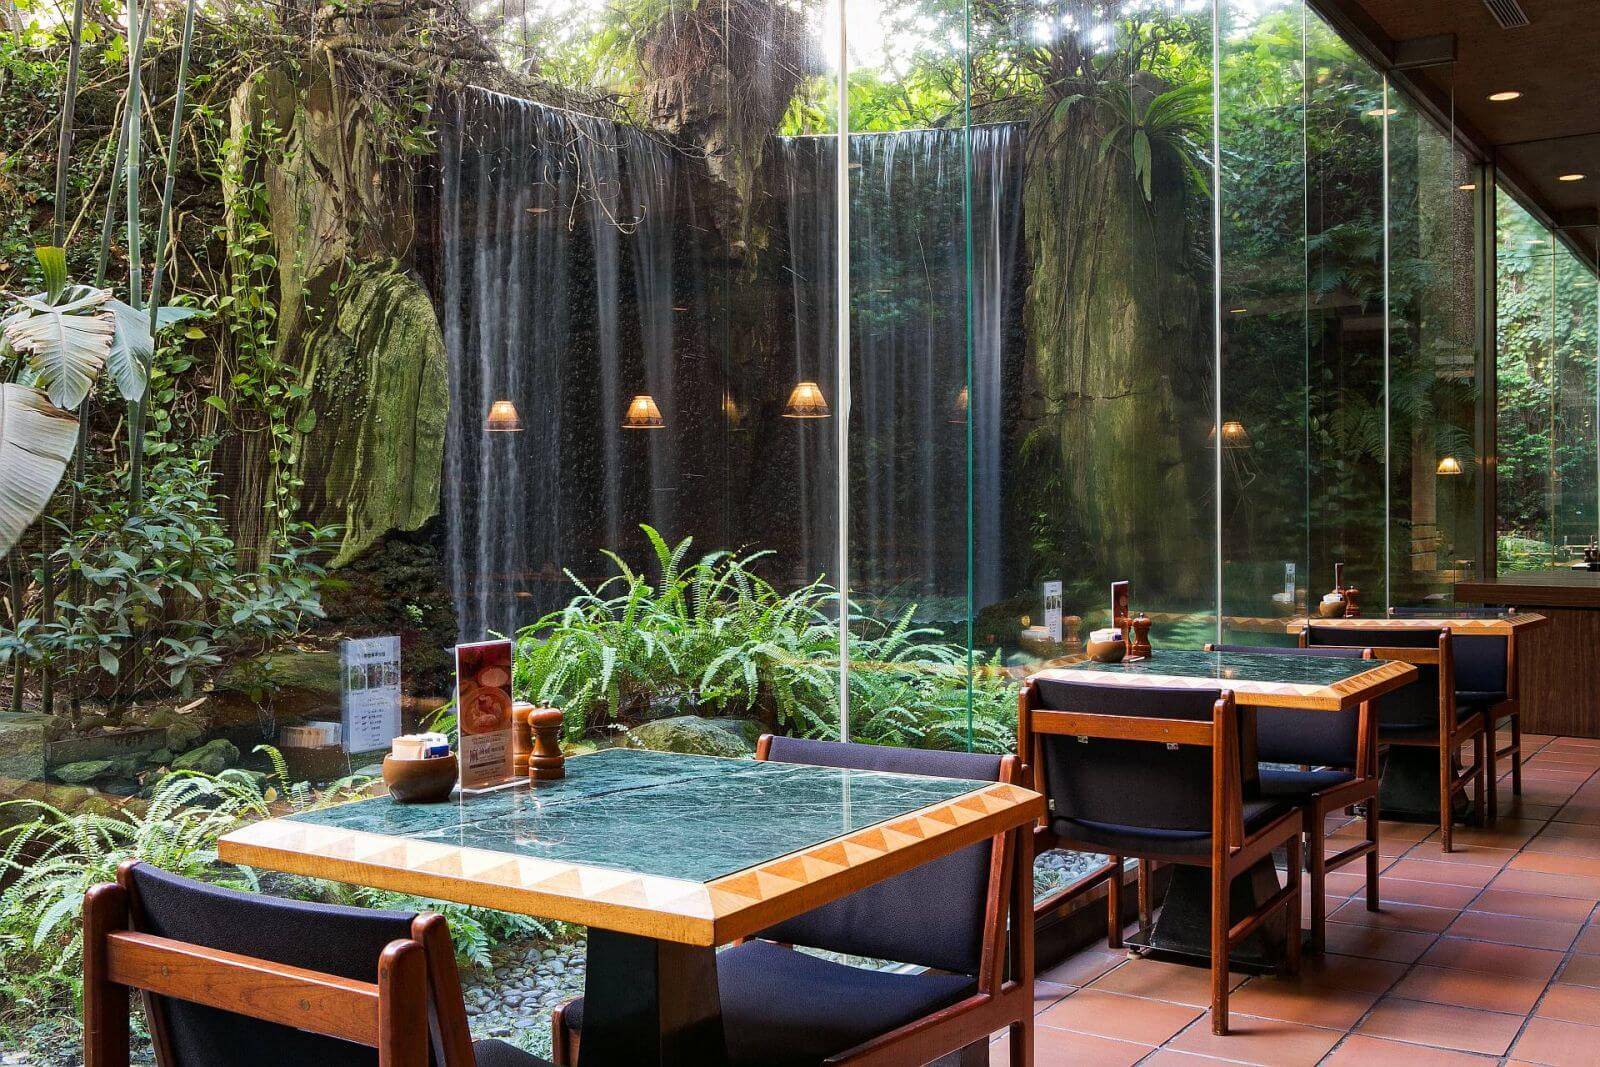 Ambassador Hotel Taipei ahmicafe with waterfalls